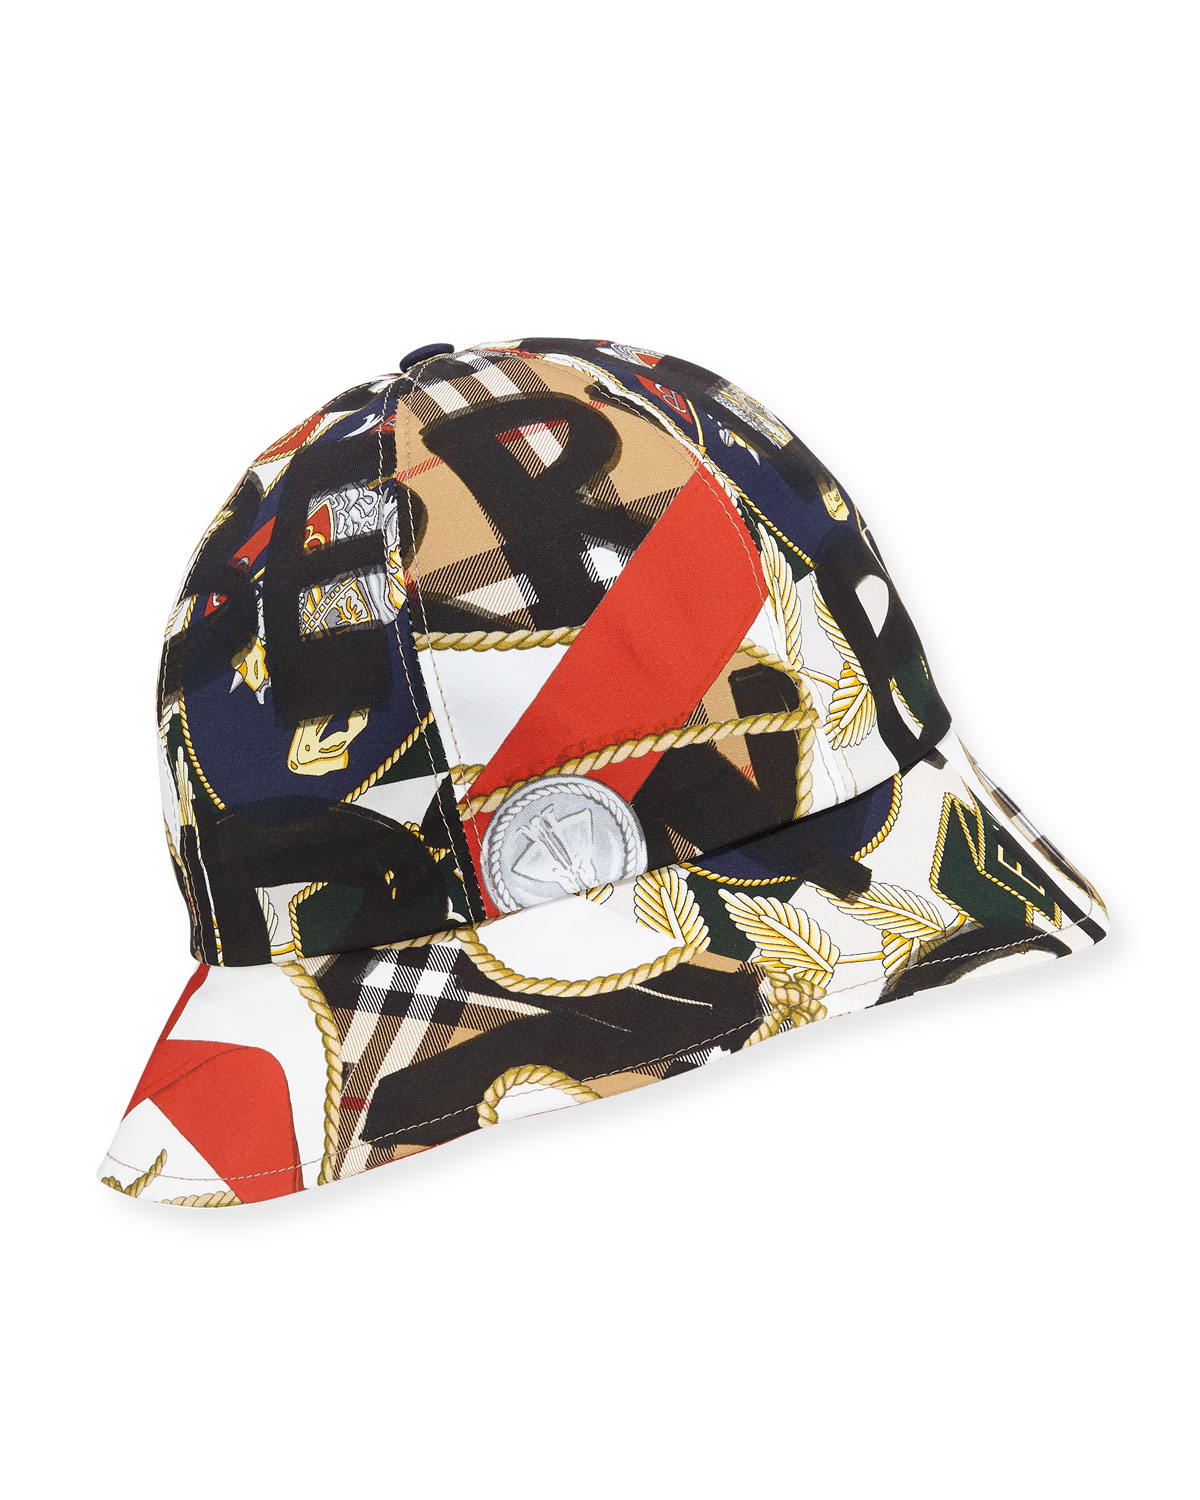 Burberry Men s Medal Vintage Check Bucket Hat  0a3430d5b5